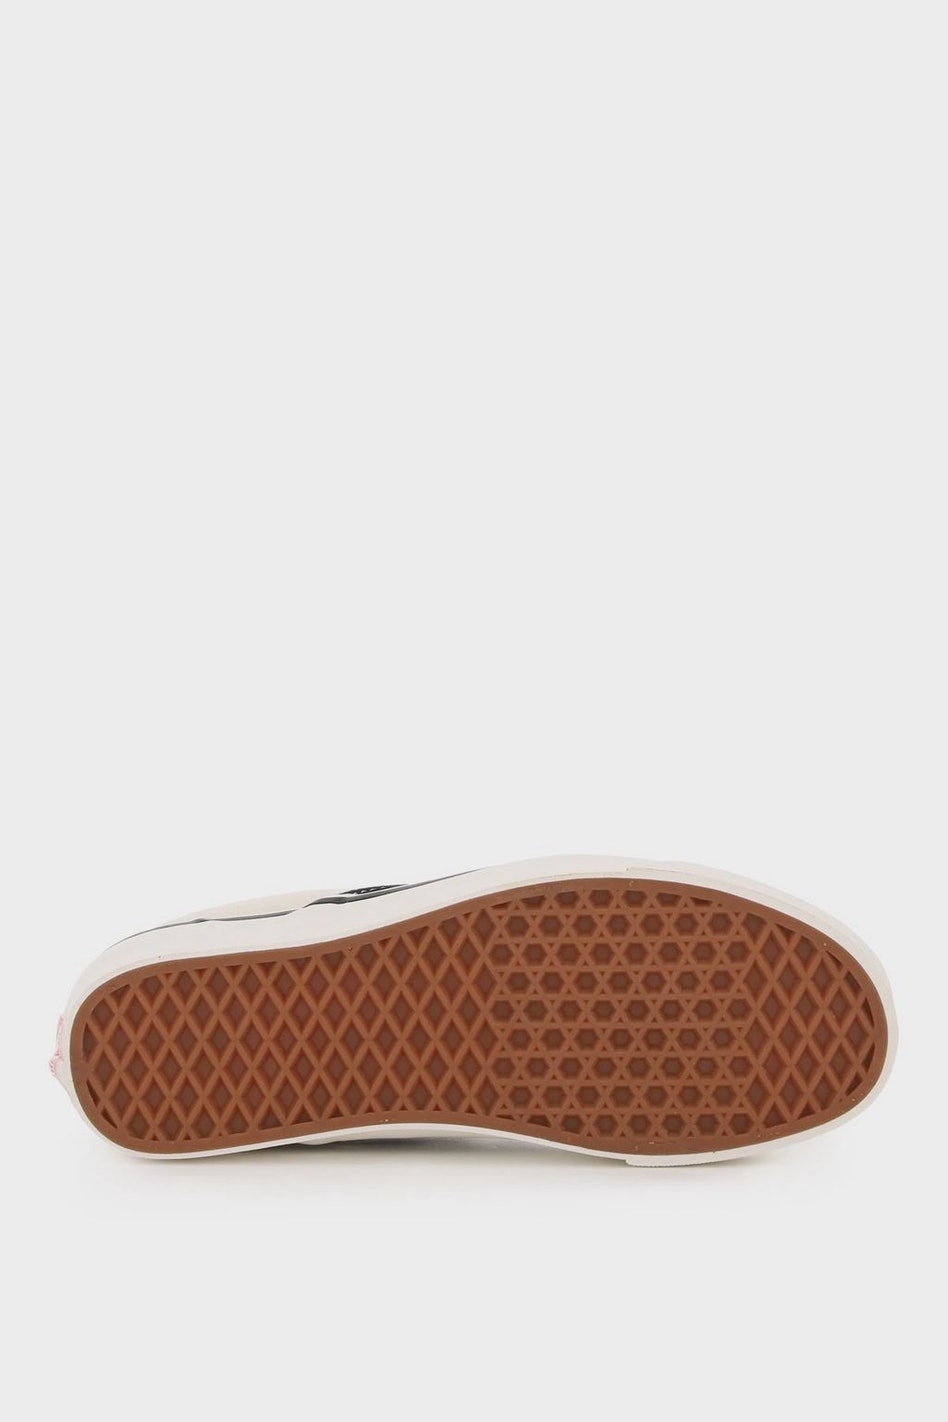 Vans Classic Slip-on Checkerboard Sneakers: additional image